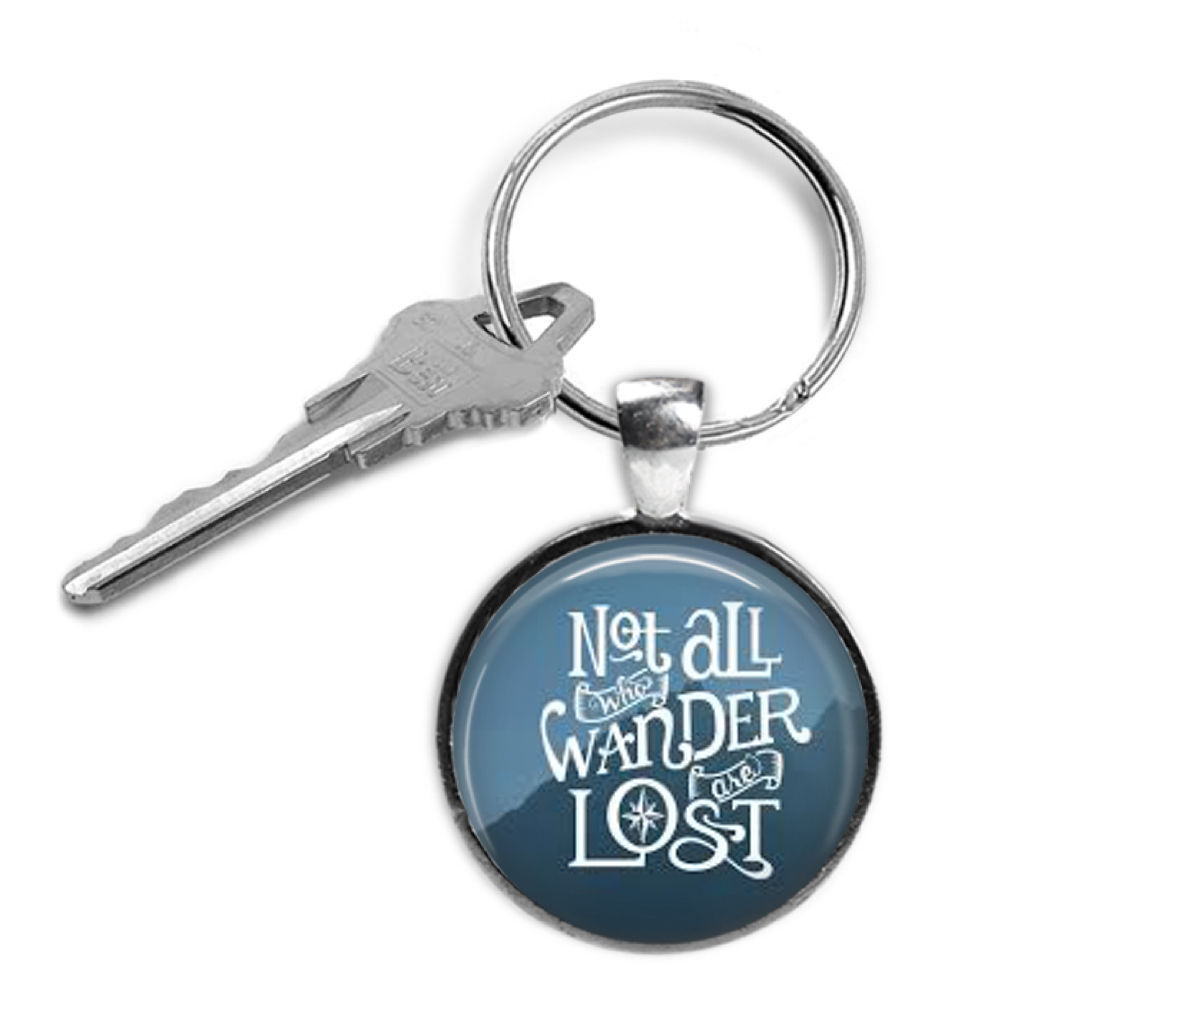 Quote keyring -Not all that Wander - Graduation gift - Christmas gifts for him - $18.32